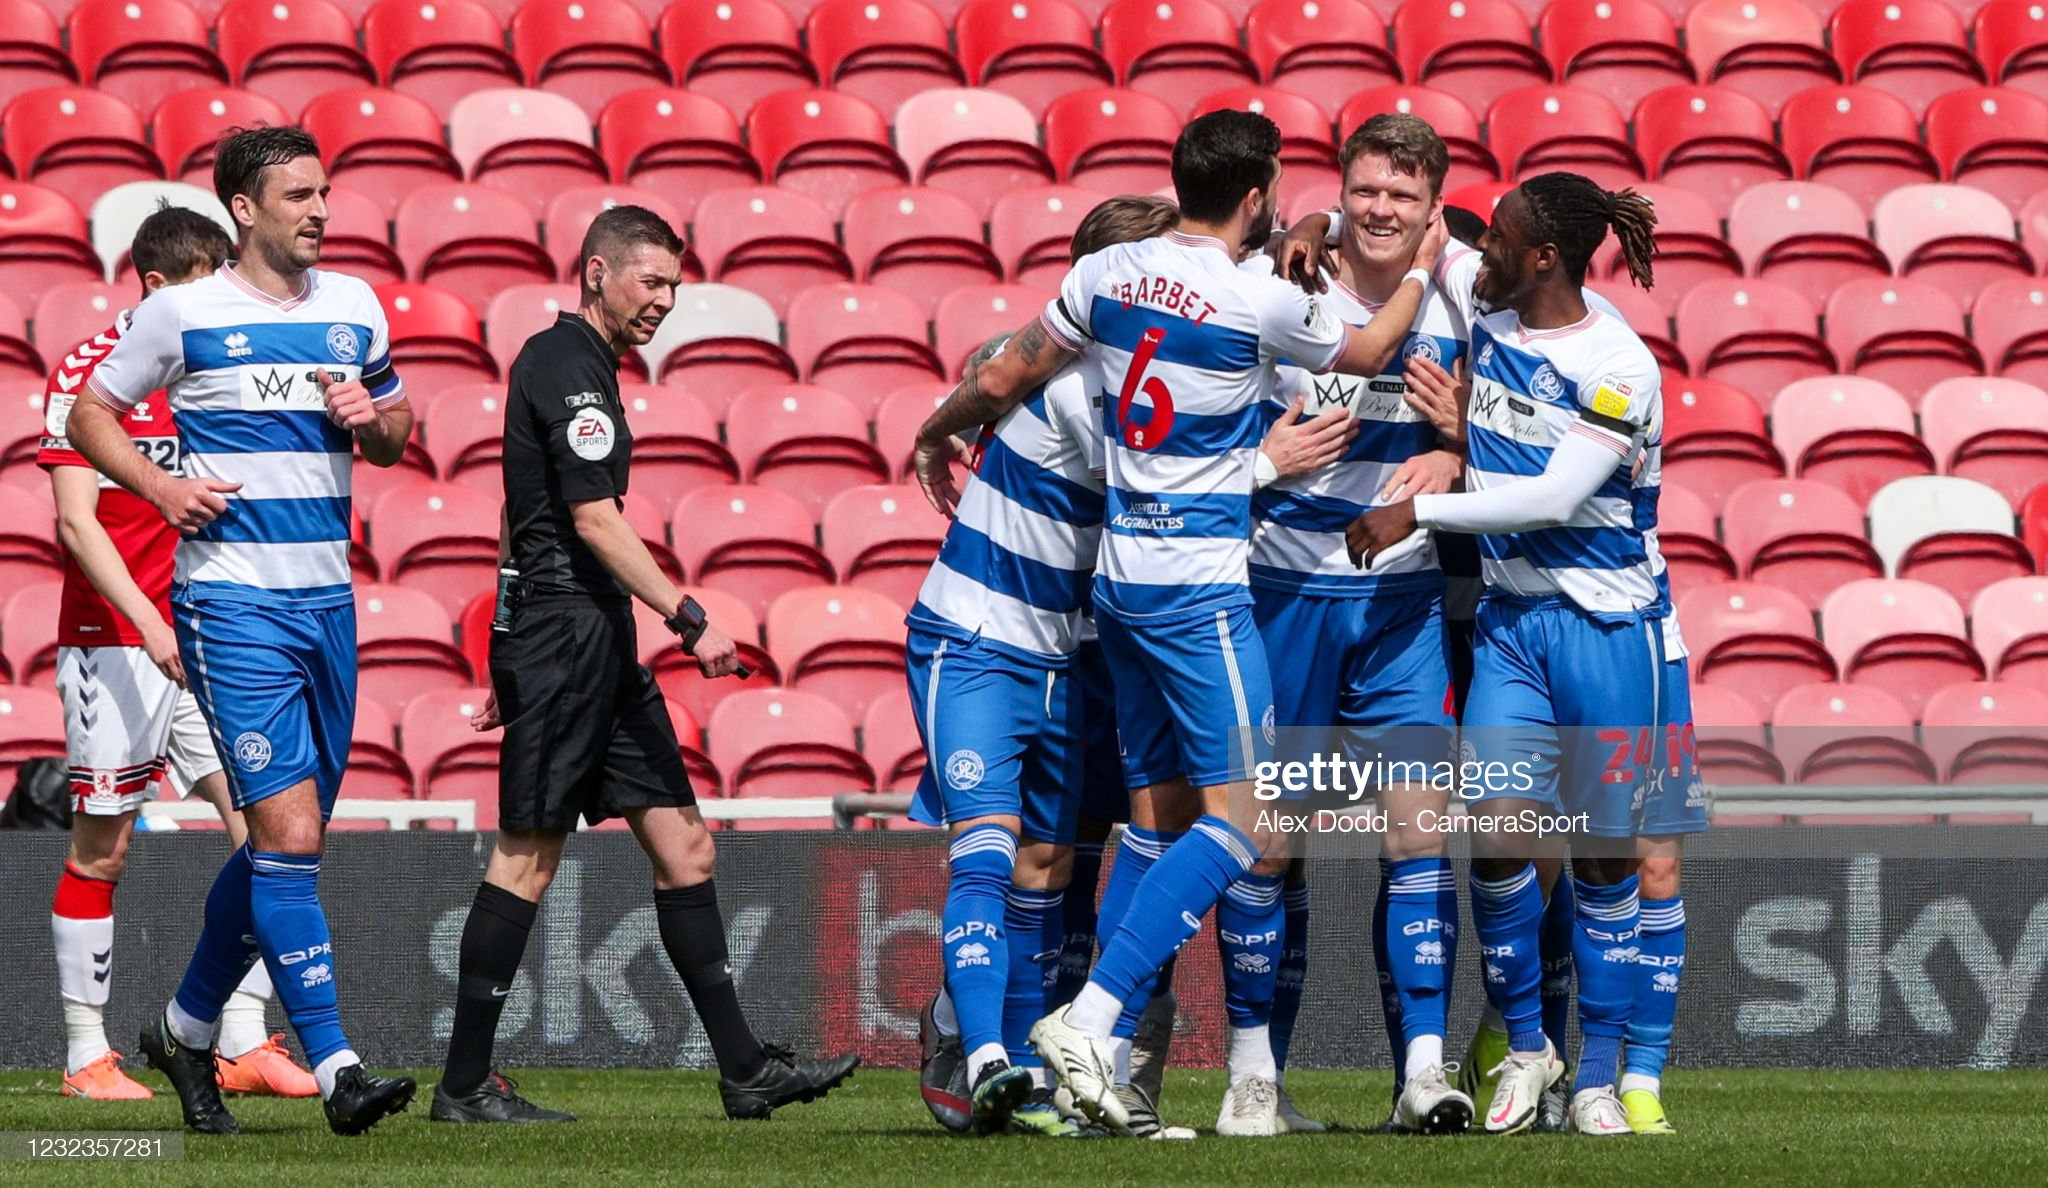 Ten-man QPR hold off Boro to seal victory